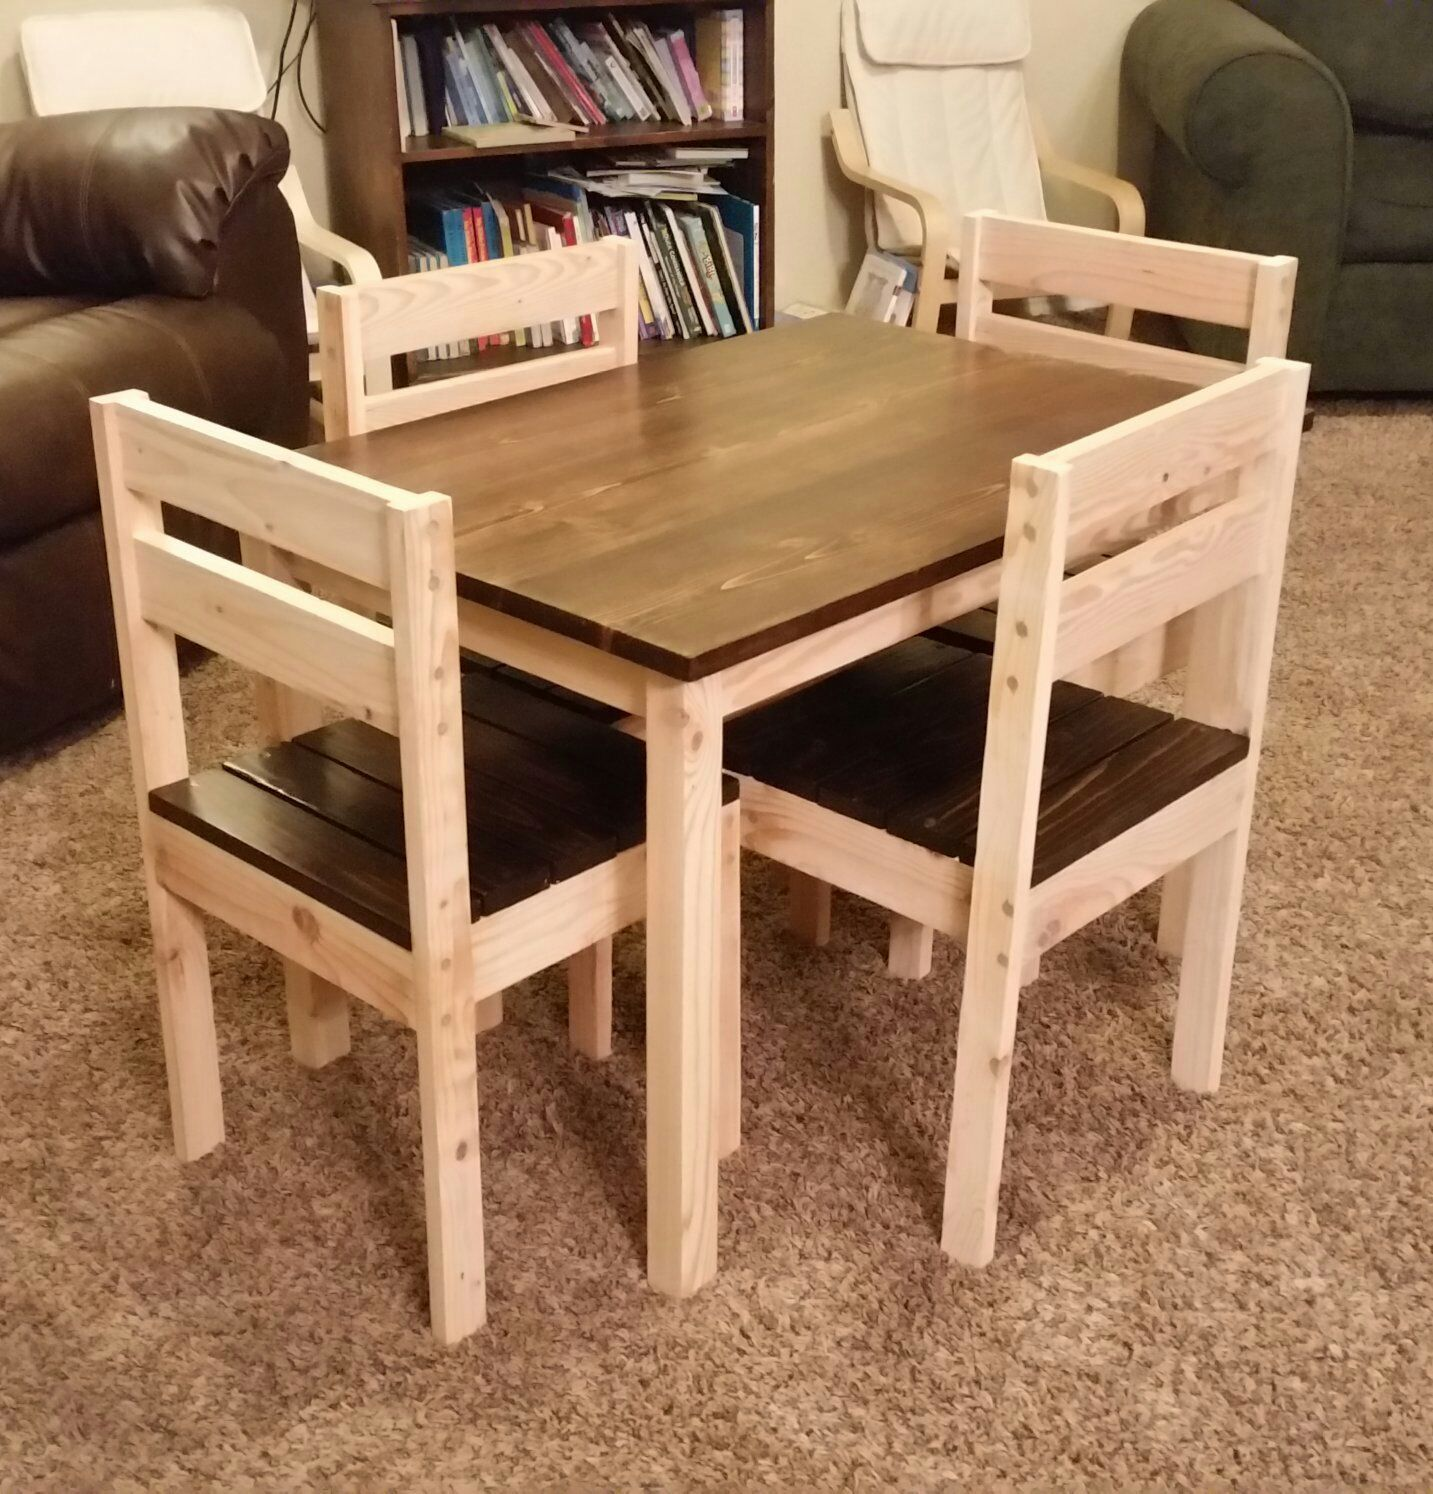 Kids table and chairs Do It Yourself Home Projects from